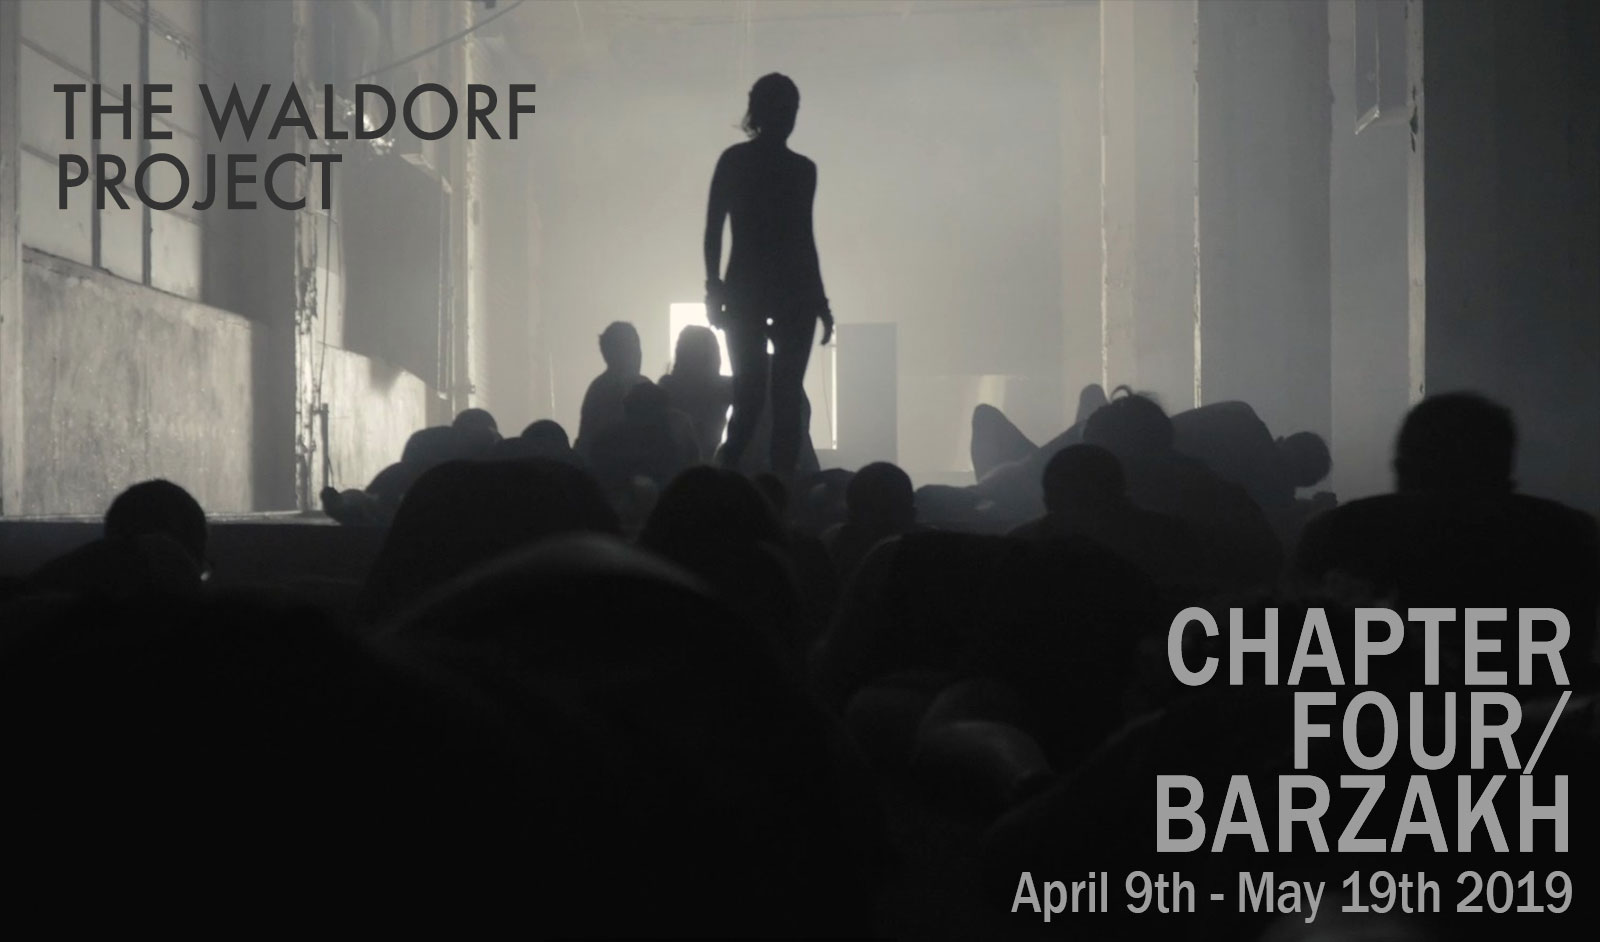 Waldorf Project | Chapter Four / Barzakh | Extended to May 19th